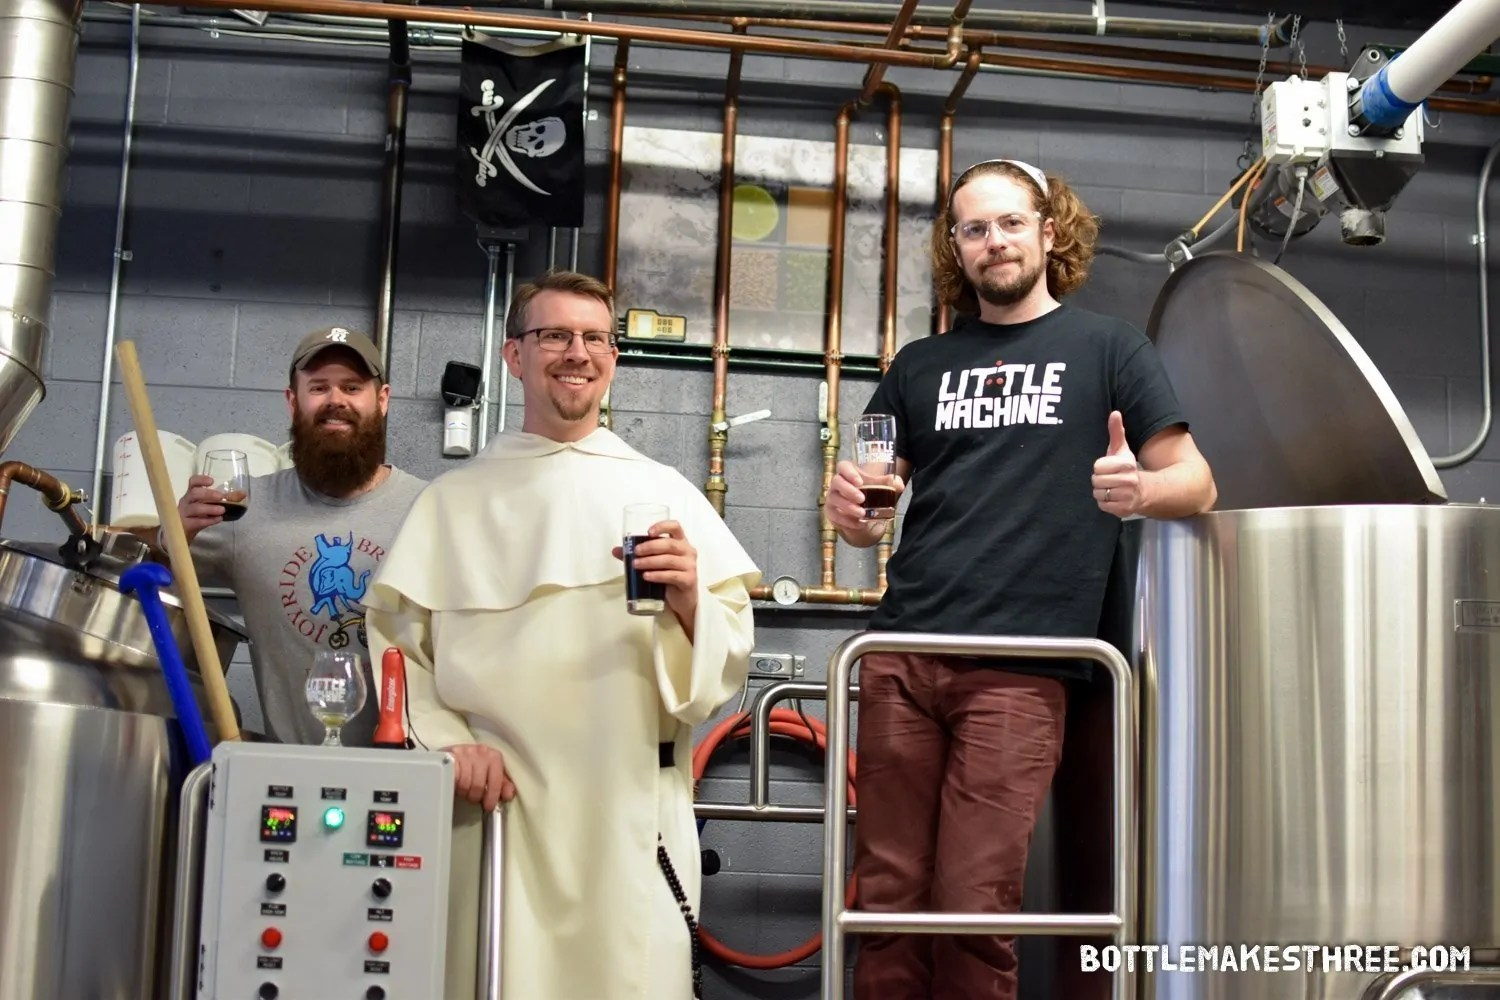 2017 Collaboration Fest Preview: Little Machine Beer & Joyride Brewing prove that the West Side is the Blessed Side | BottleMakesThree.com